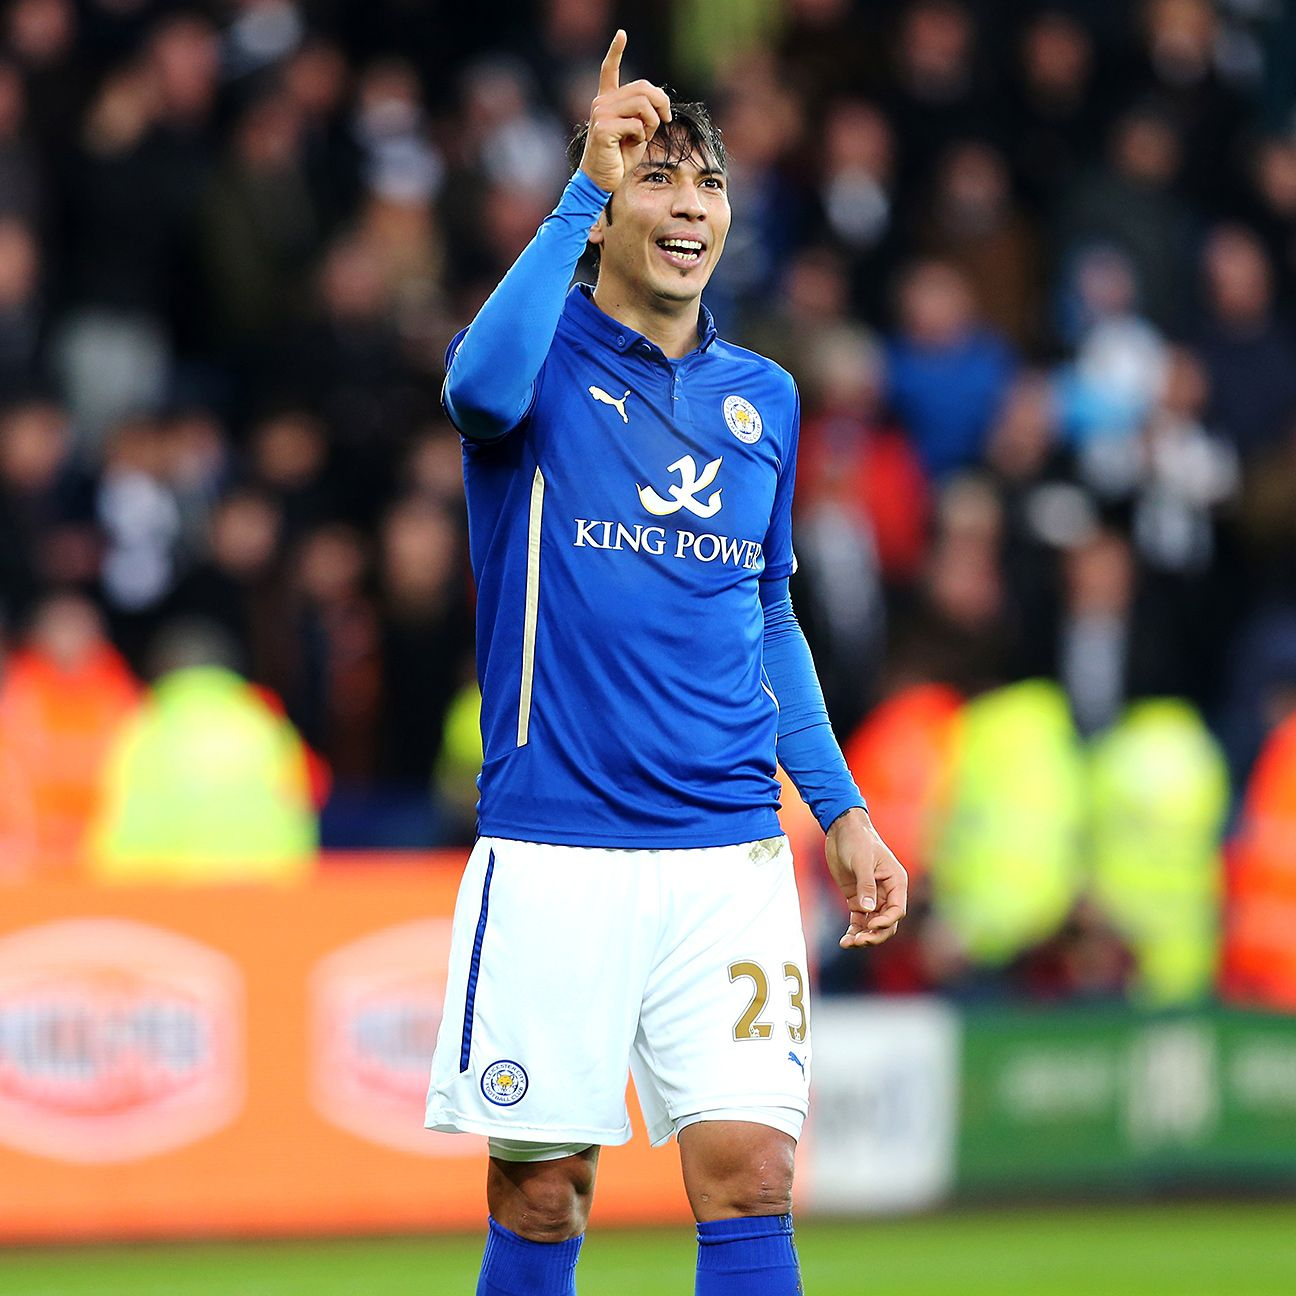 Leo Ulloa finding his scoring touch is a good sign for Leicester City.